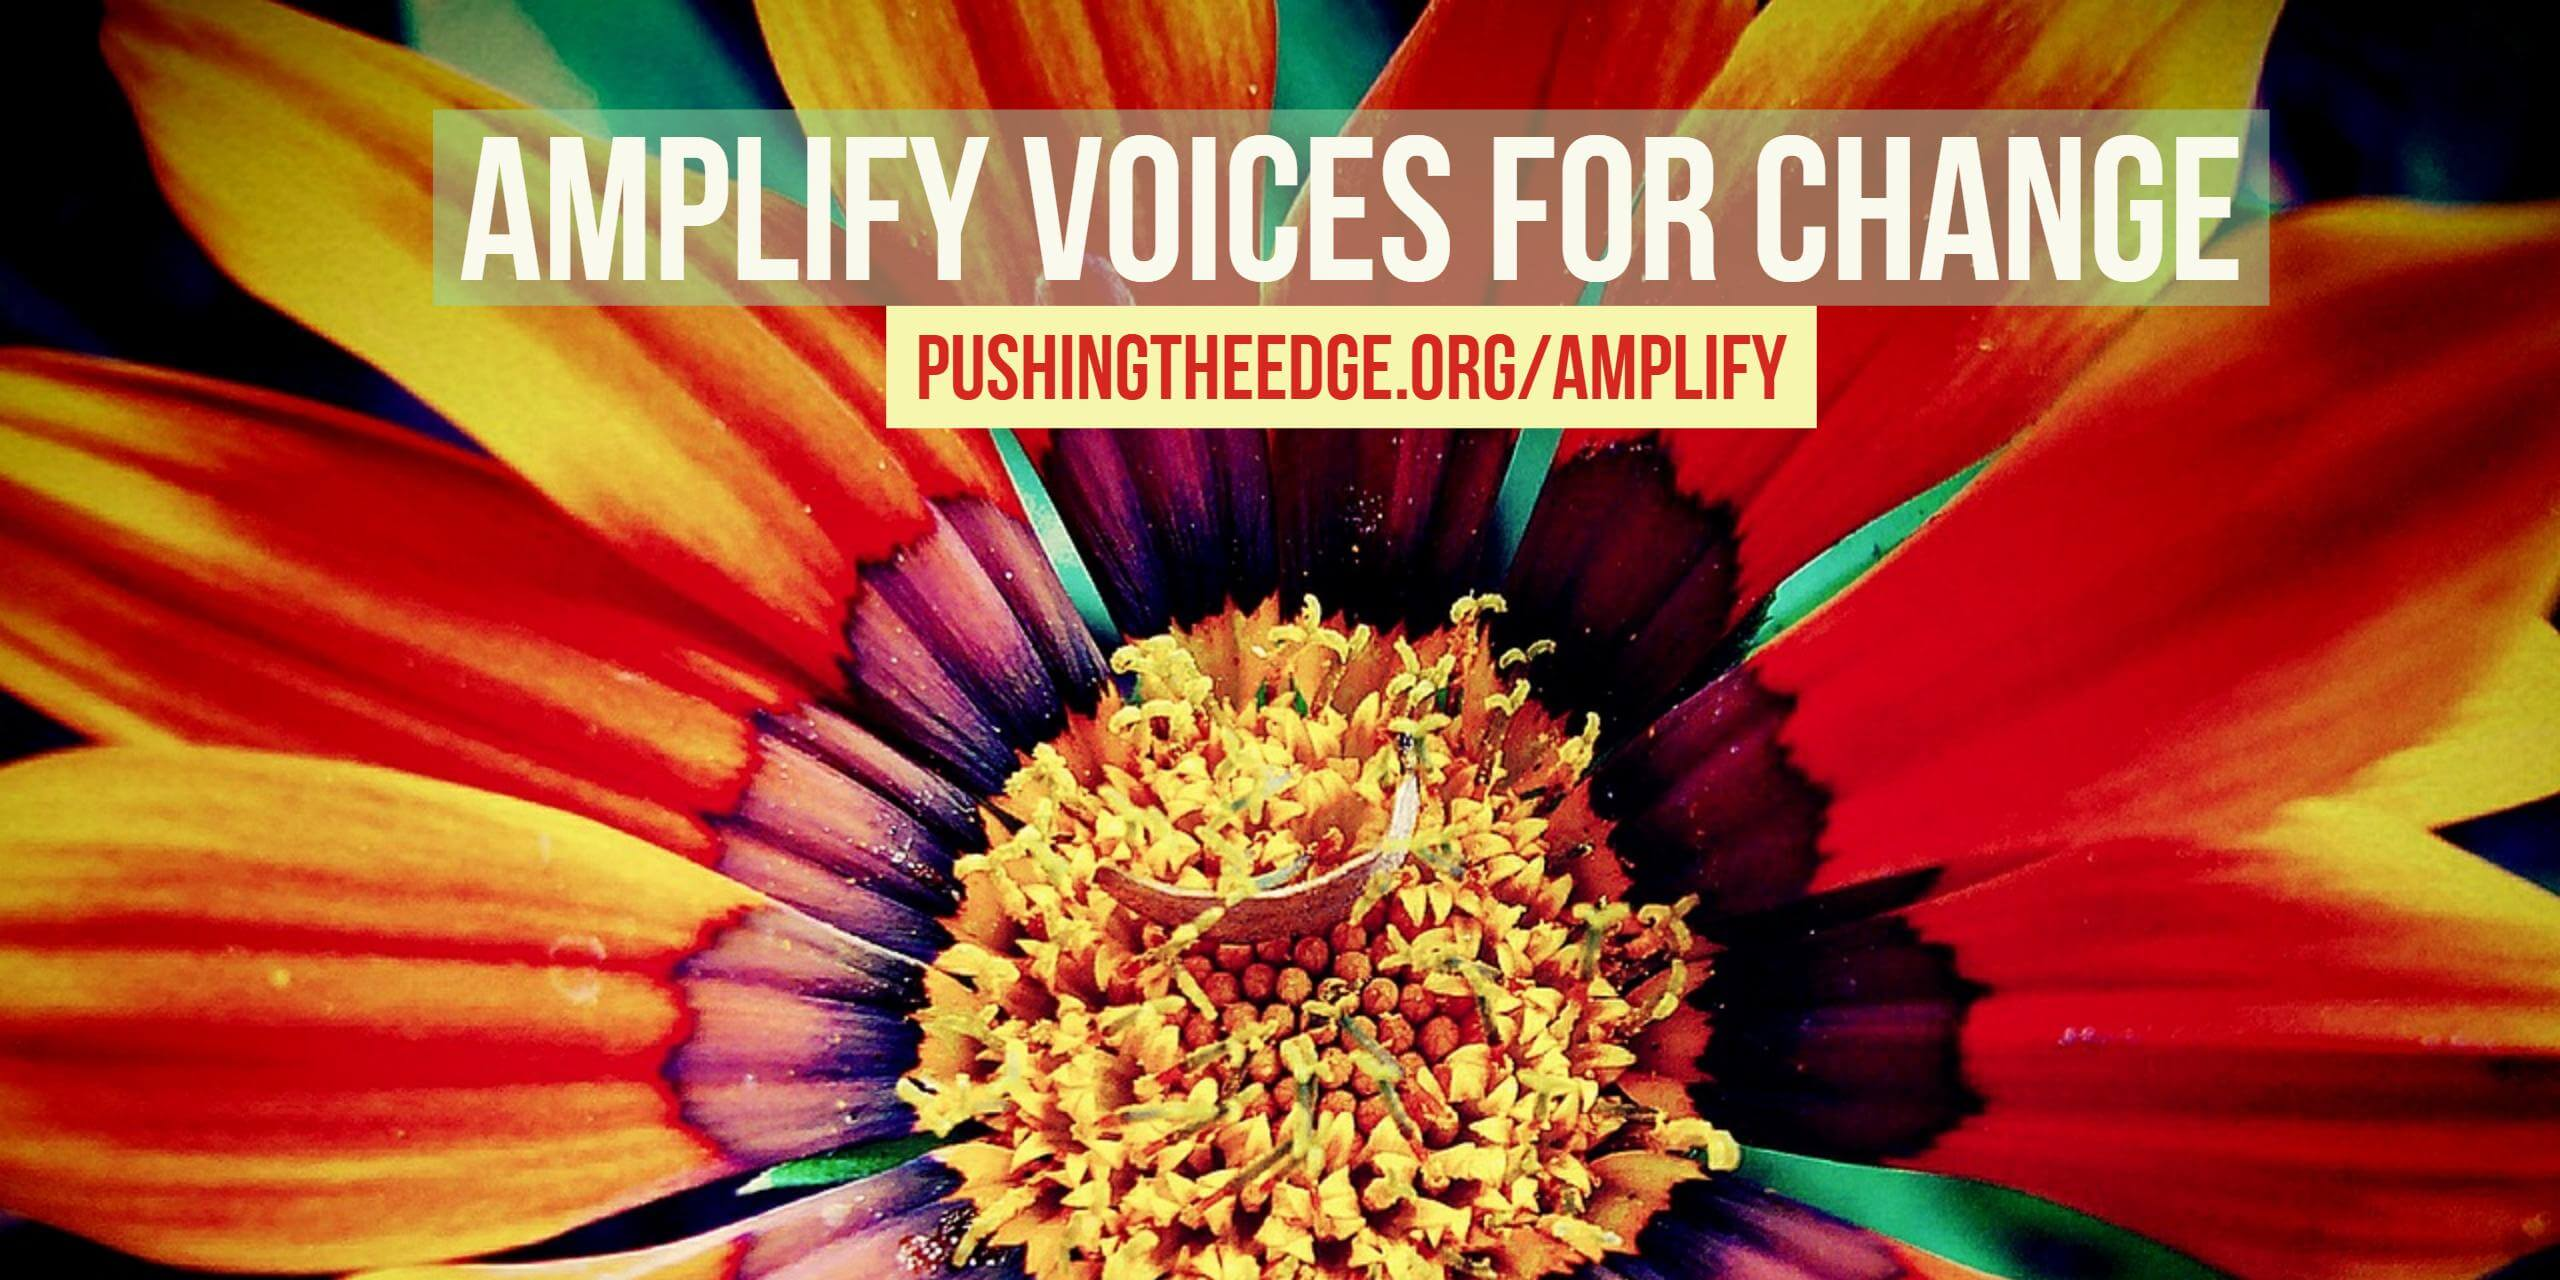 Amplify voices for change